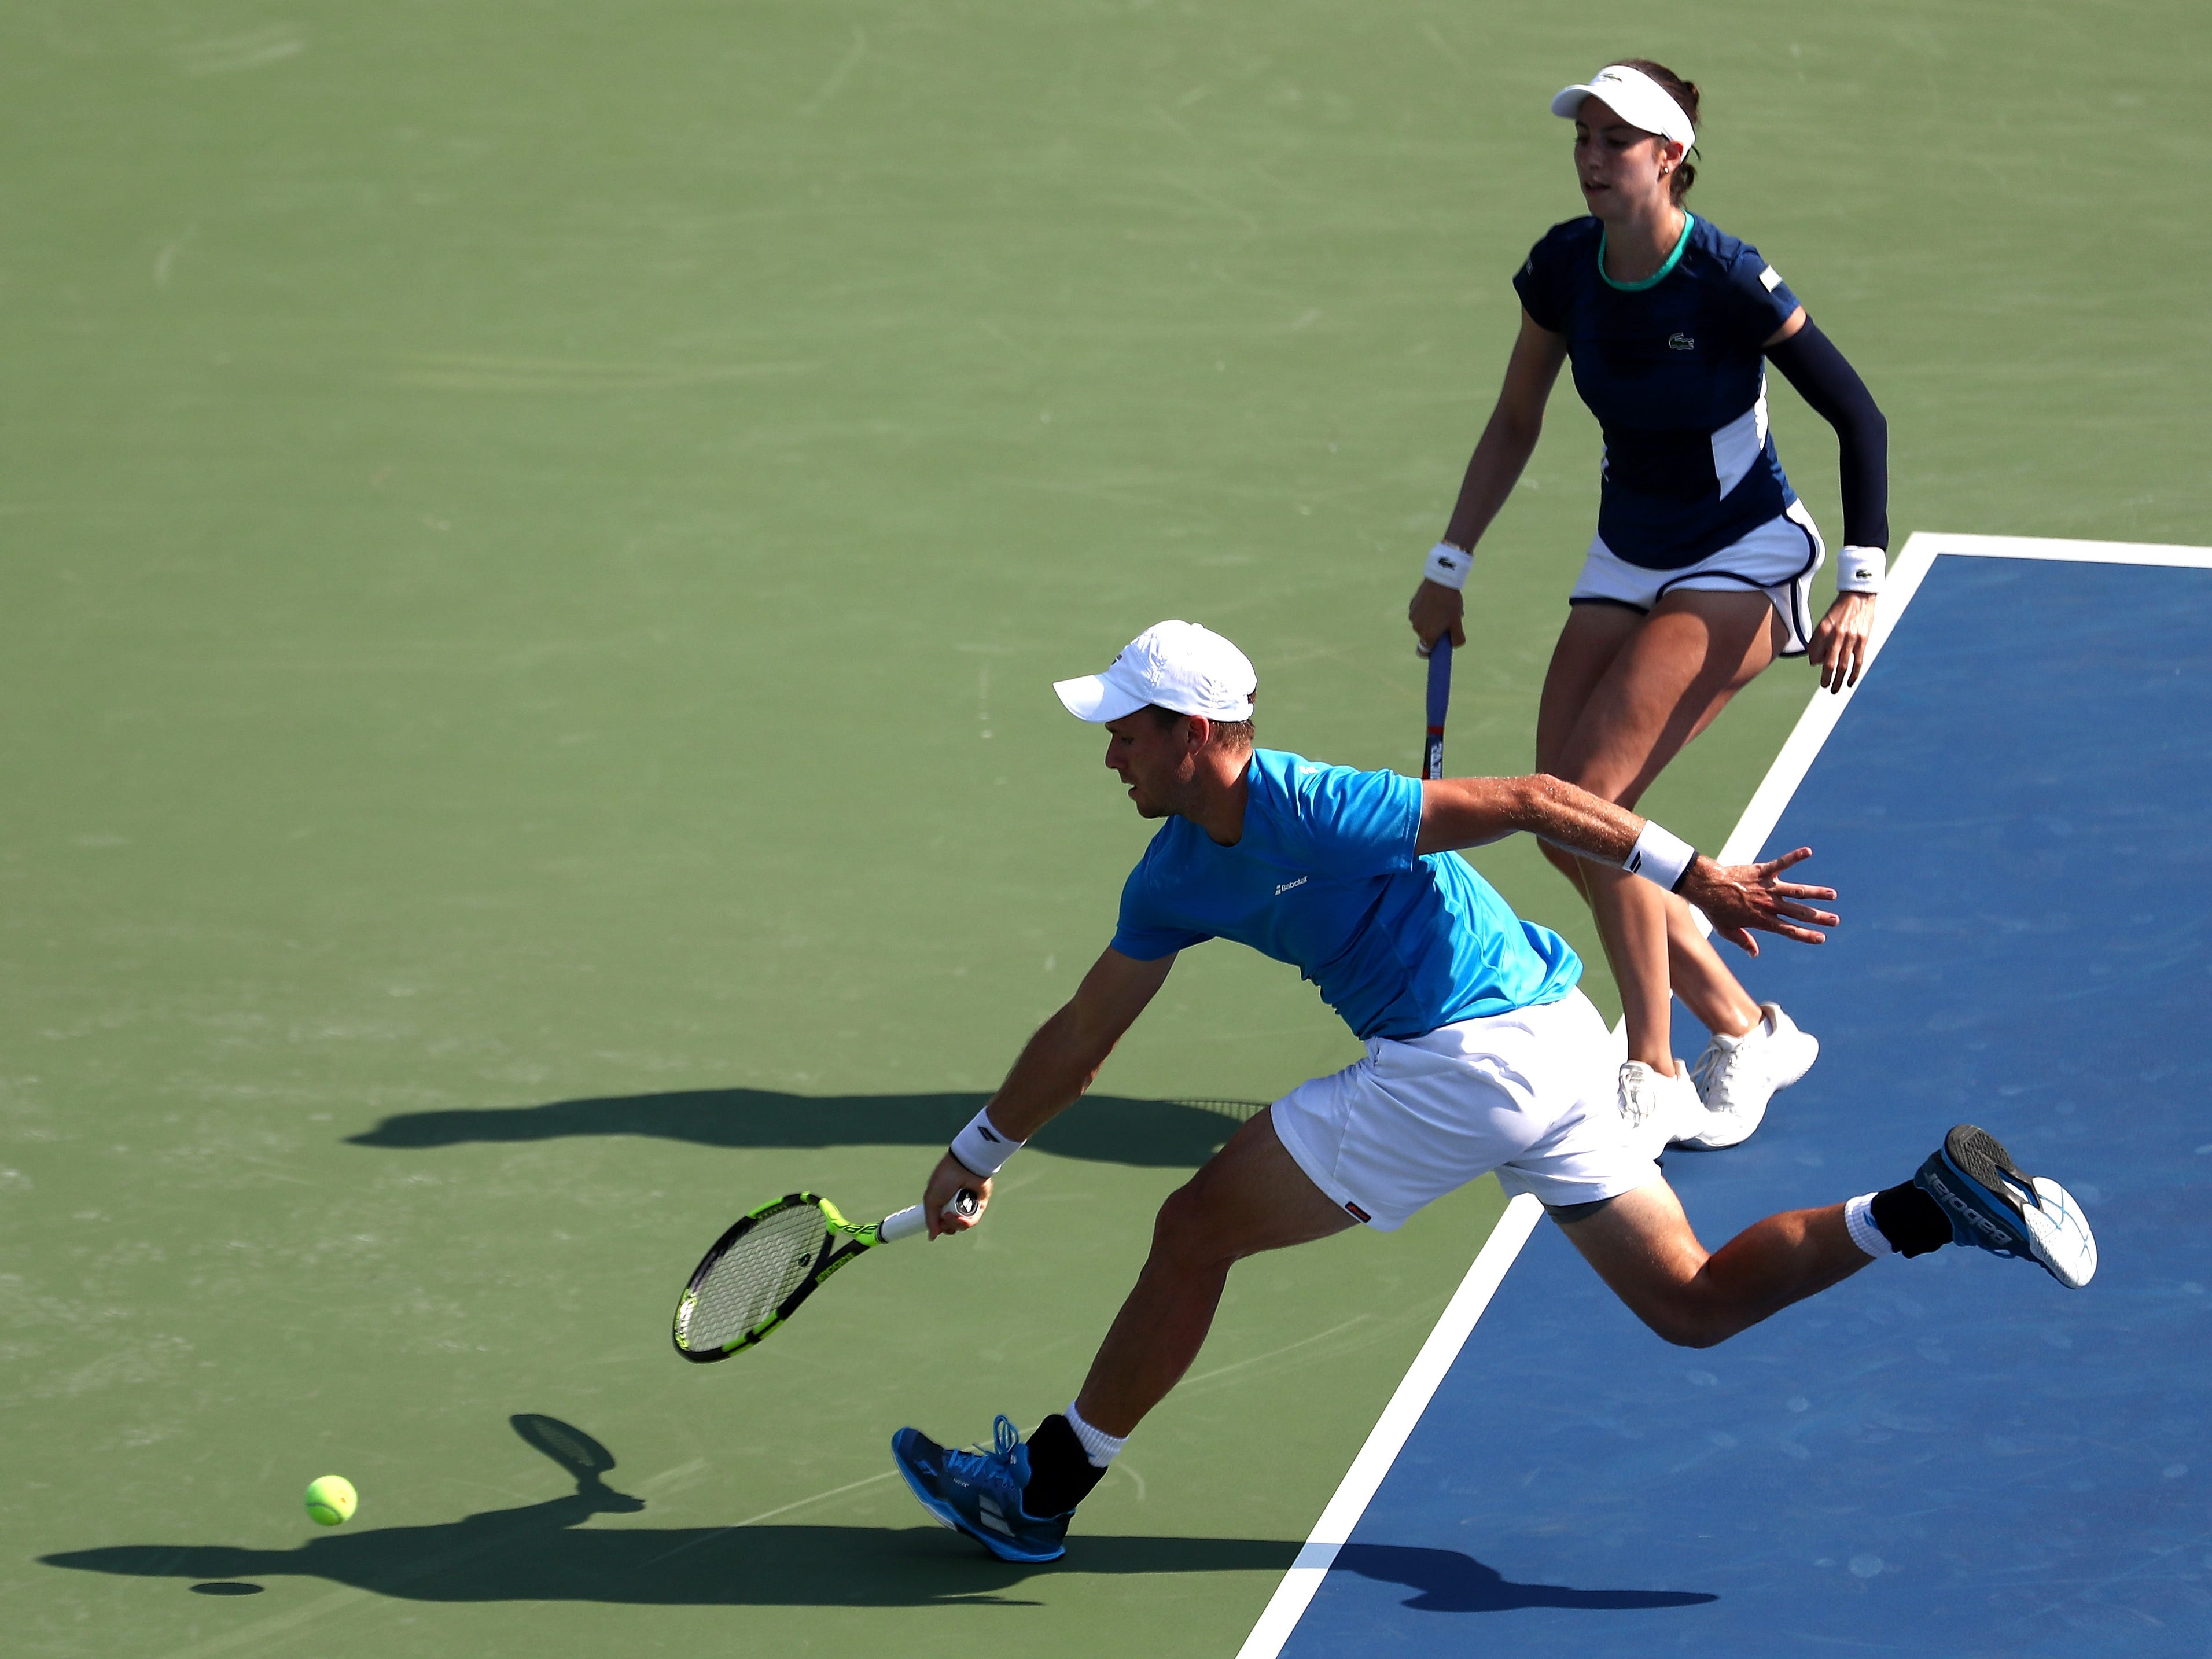 Americans Christian Harrison, left, and Christina McHale chase down a shot during the mixed doubles semifnal match against Jamie Murray and Bethanie Mattek-Sands.